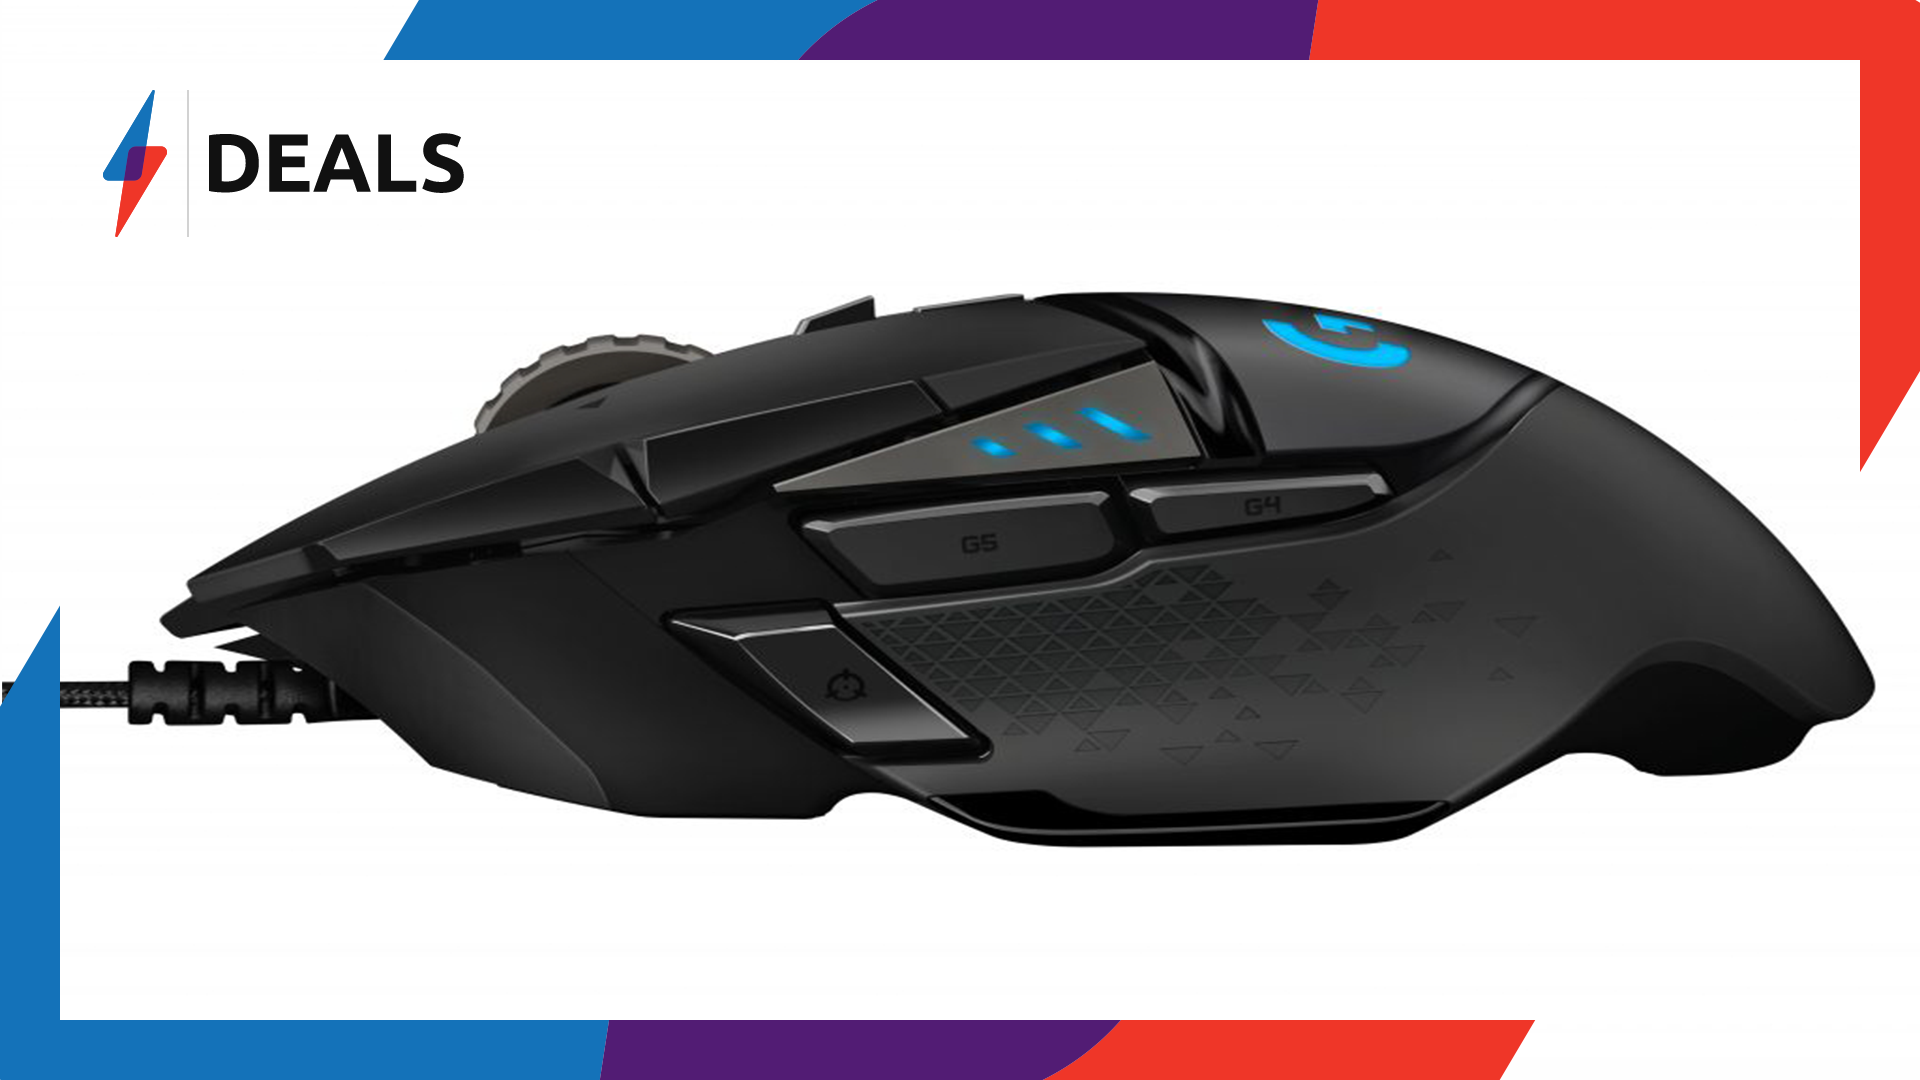 Calling all PC Gamers, Get 44% off Logitech's G502 Hero Gaming Mouse